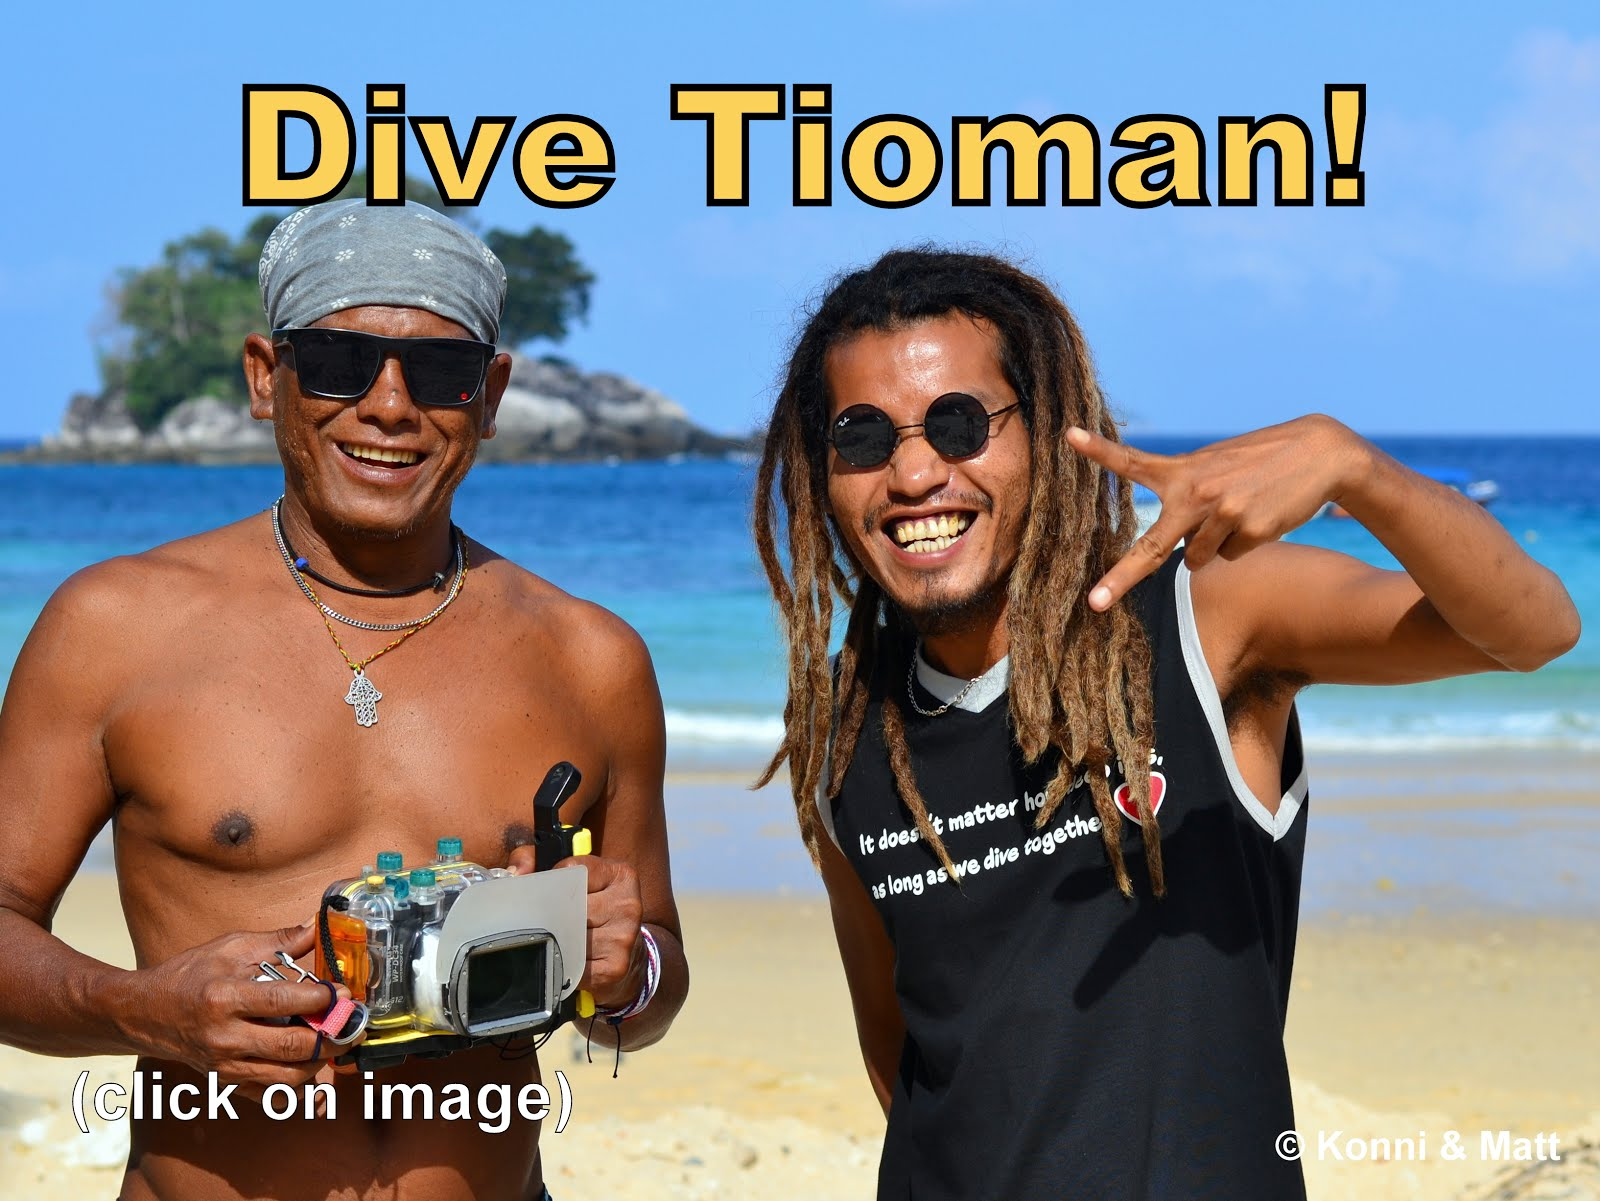 Dive Tioman - click on image for details